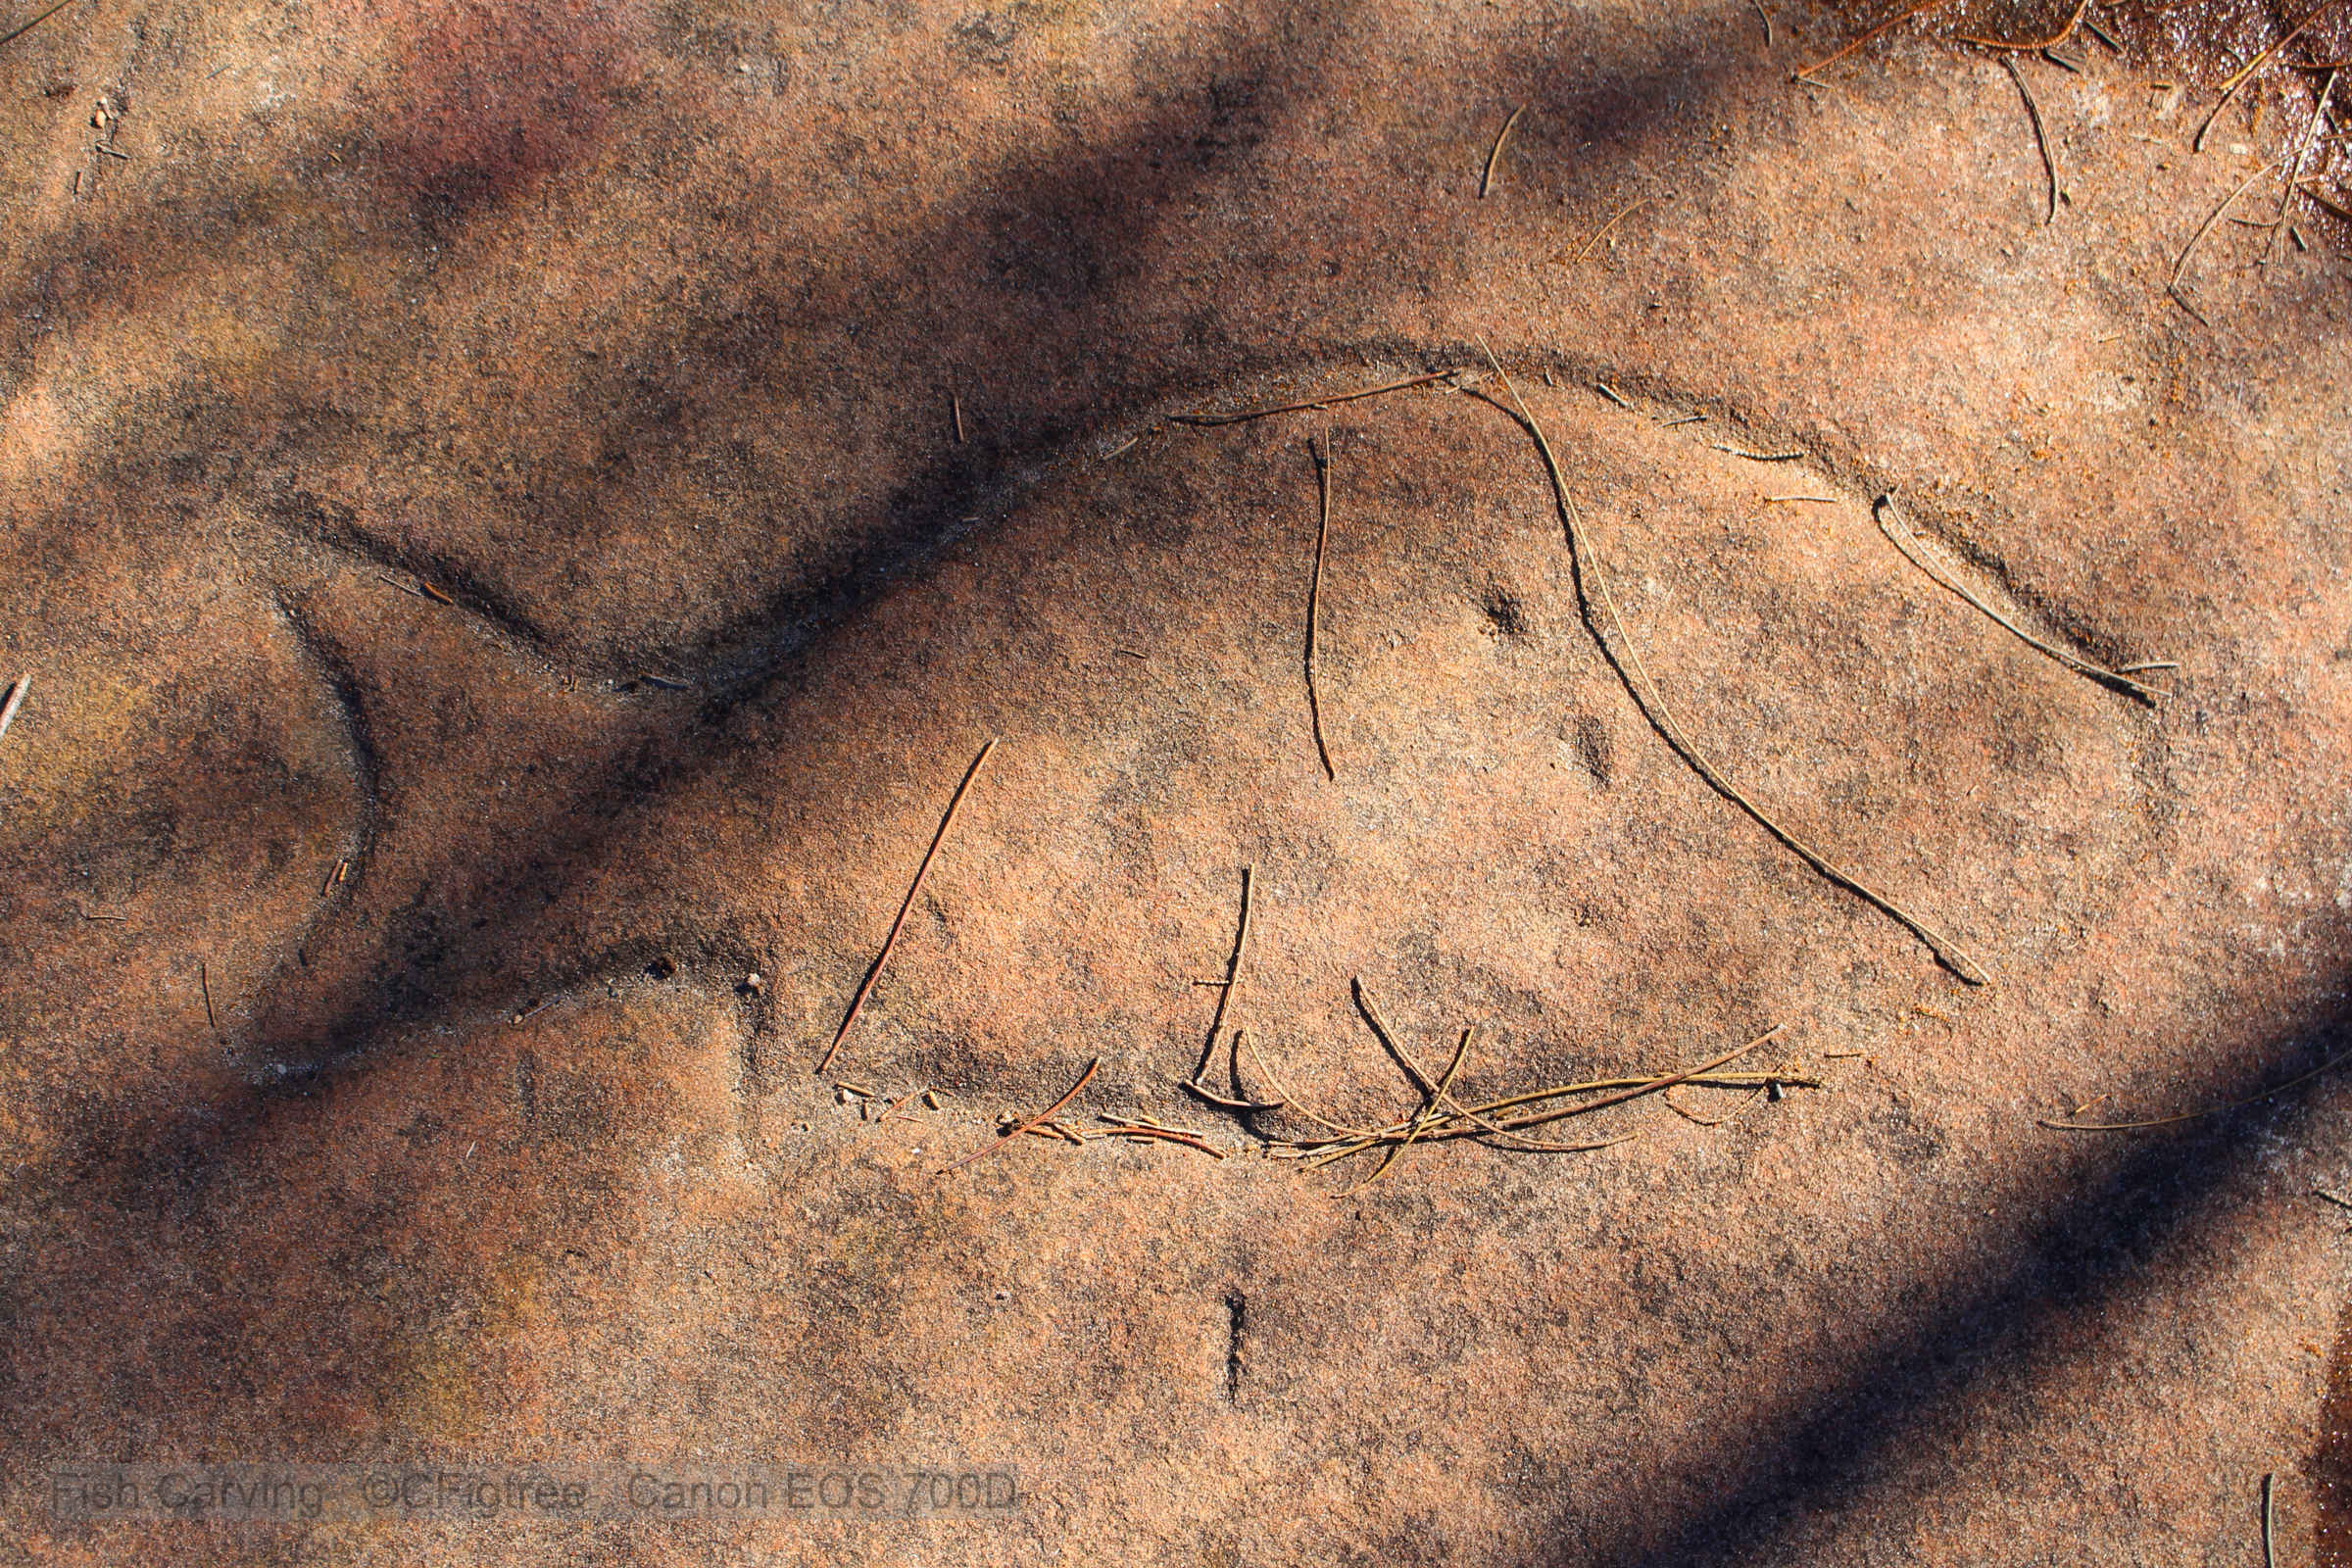 An Aboriginal Carving of a Fish on Sandstone